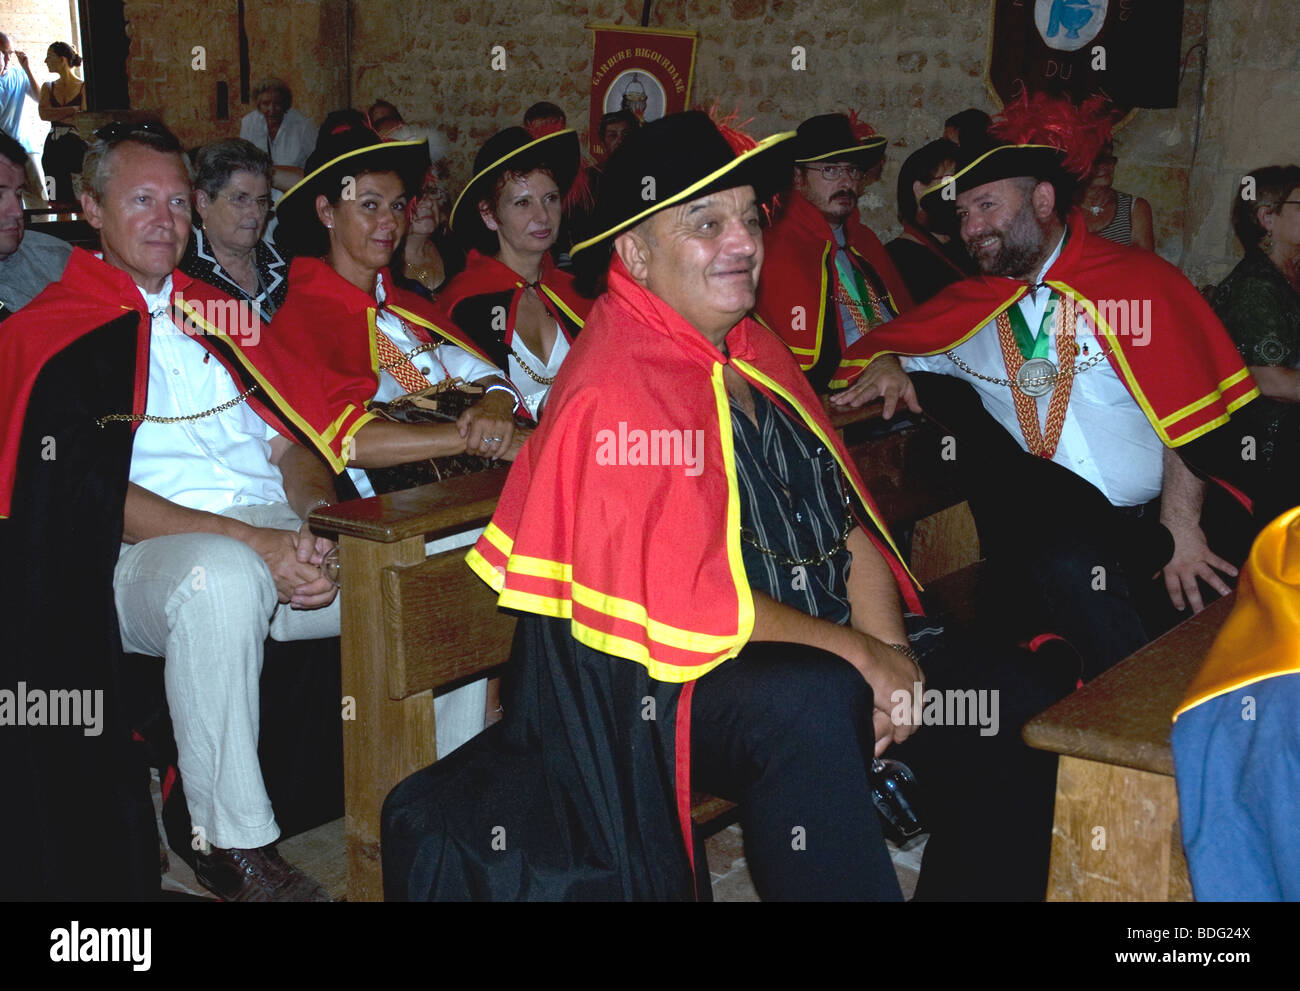 Members of Madiran's local confrérie, the Viguerie Royale, and associated brotherhoods in church during - Stock Image